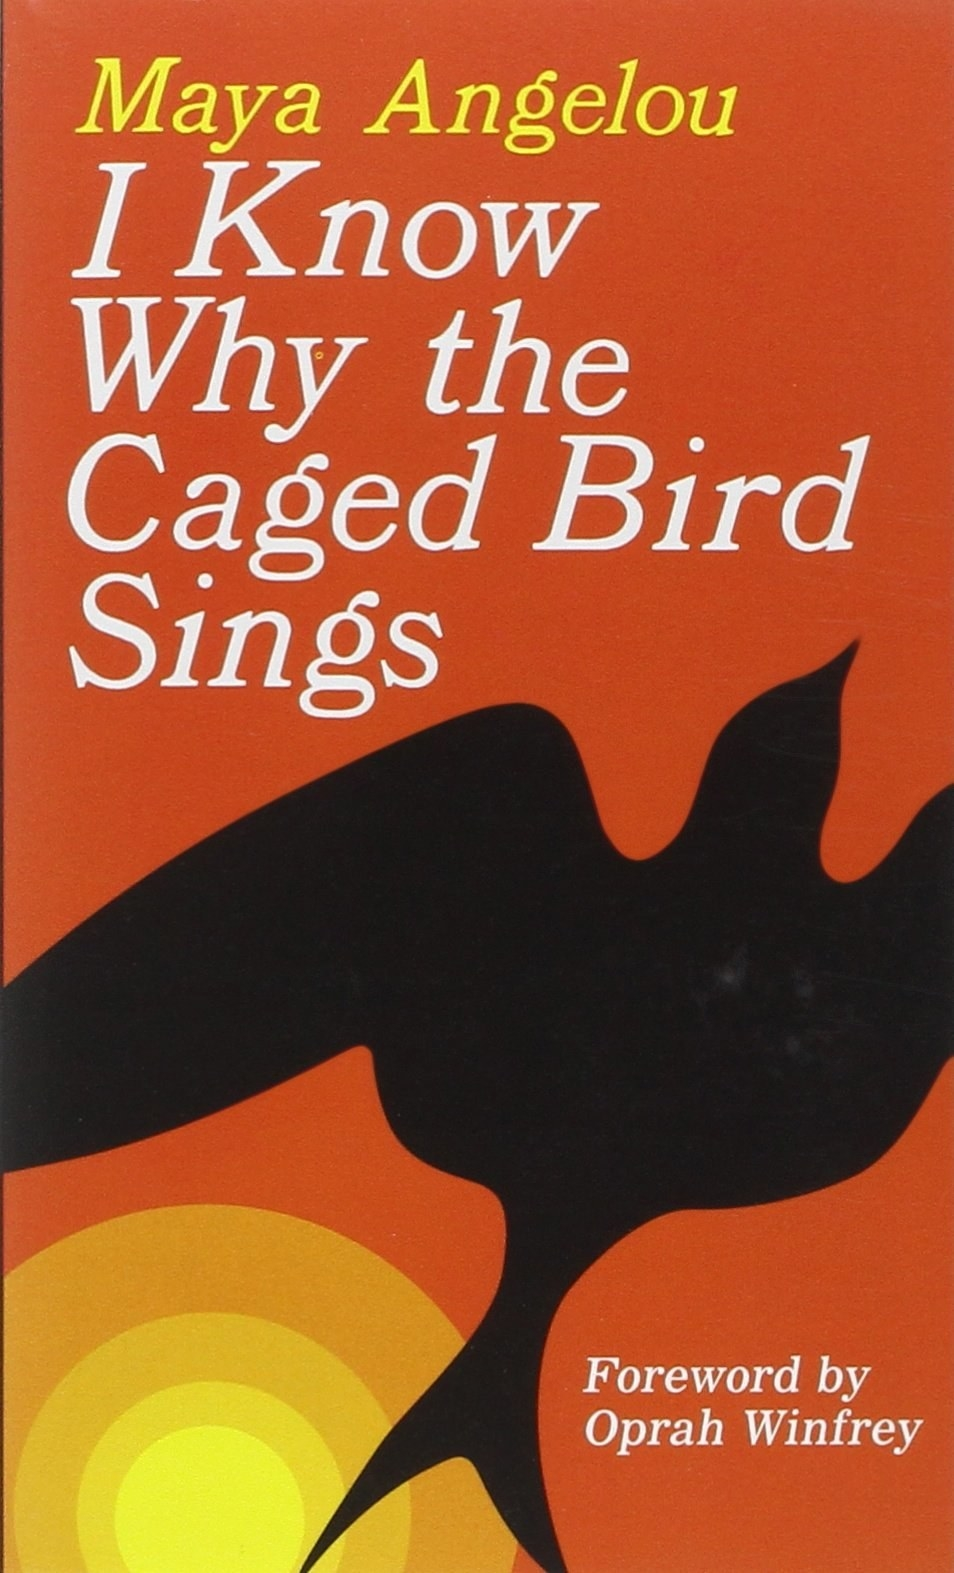 an autobiography of the life of maya angelou on why caged bird sings I know why the caged bird sings (1969), tells of her life up to why the caged bird sings, angelou autobiography, angelou became.